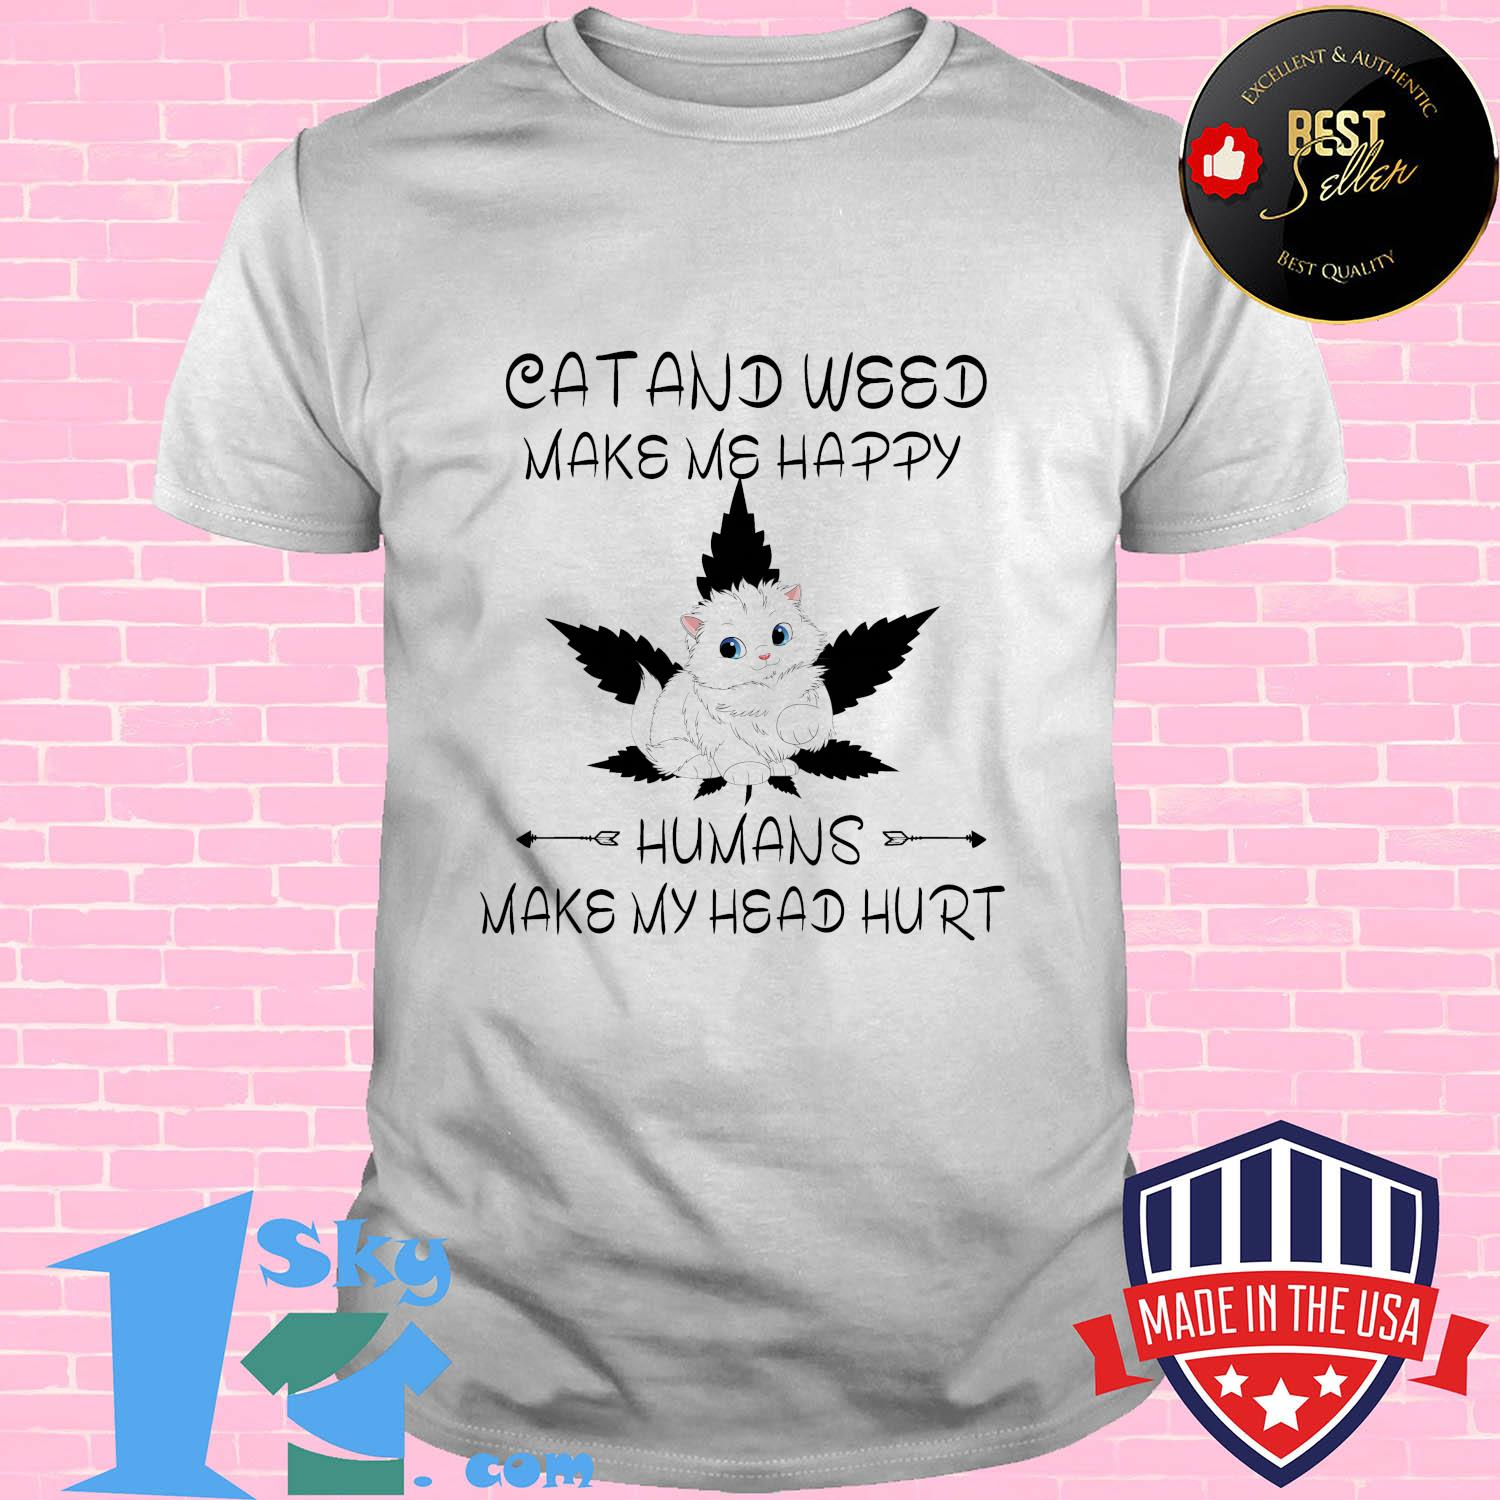 Dogs and weed make me happy humans make my head hurt shirt